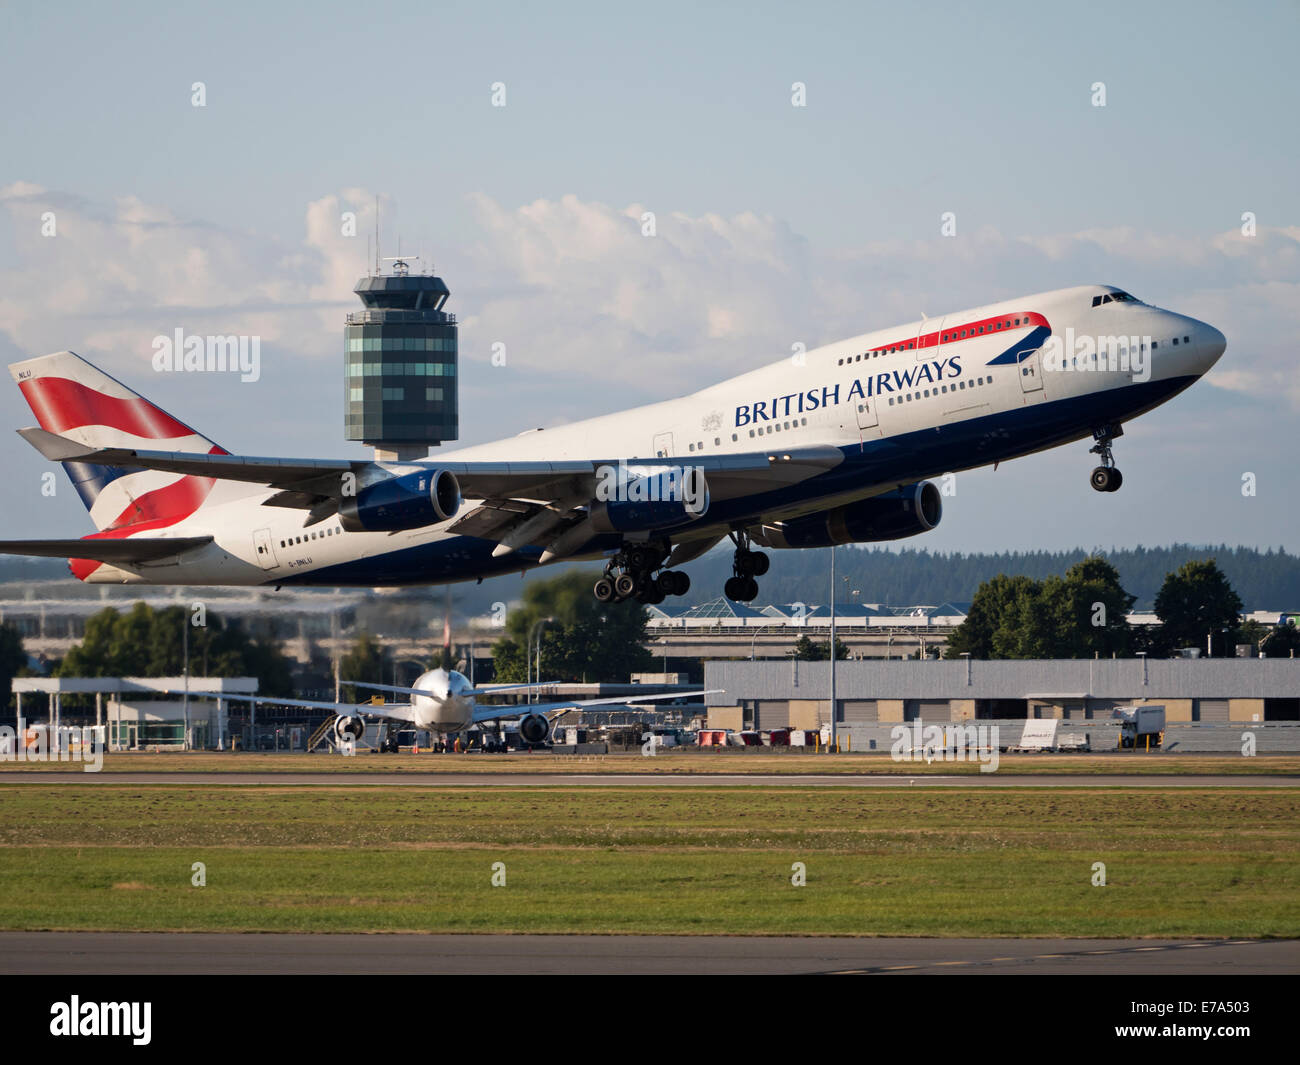 Wheels Up Aviation >> A British Airways Boeing 747-400 (G-BNLU) wide-body jumbo jet takes Stock Photo: 73367507 - Alamy